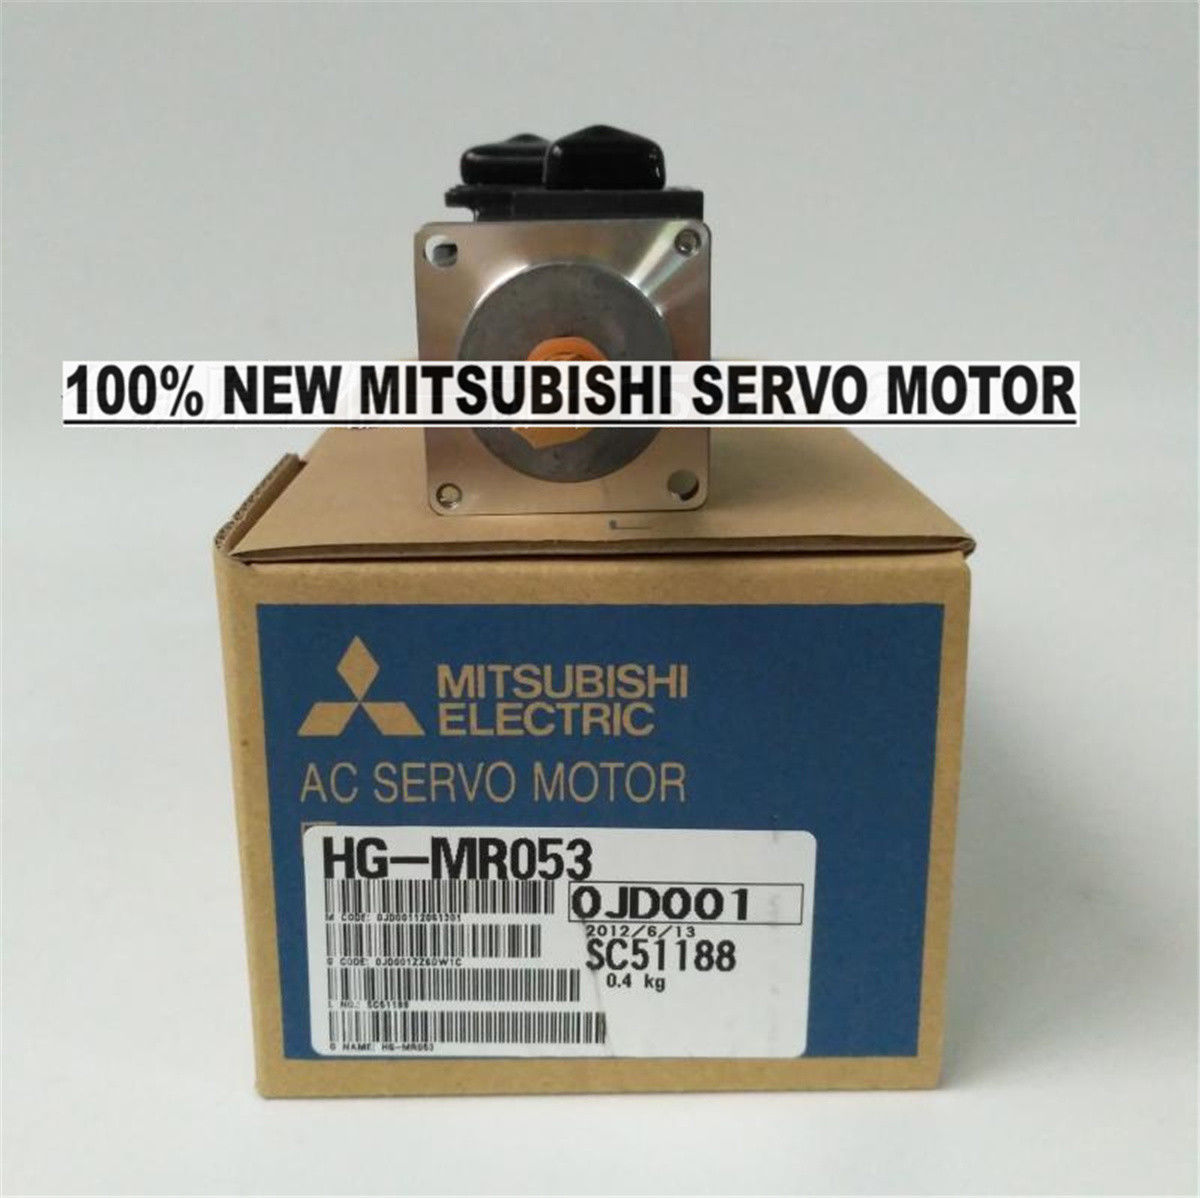 Brand NEW Mitsubishi Servo Motor HG-MR053 in box HGMR053